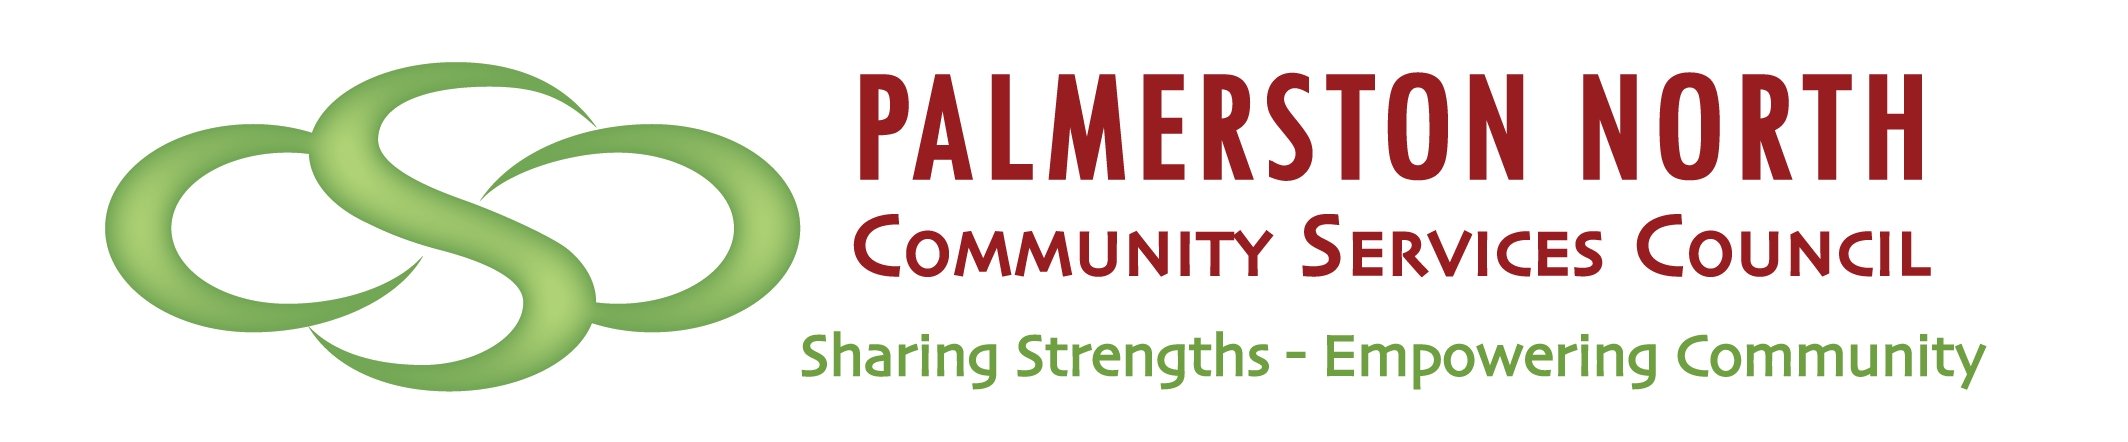 Palmerston North Community Services Council